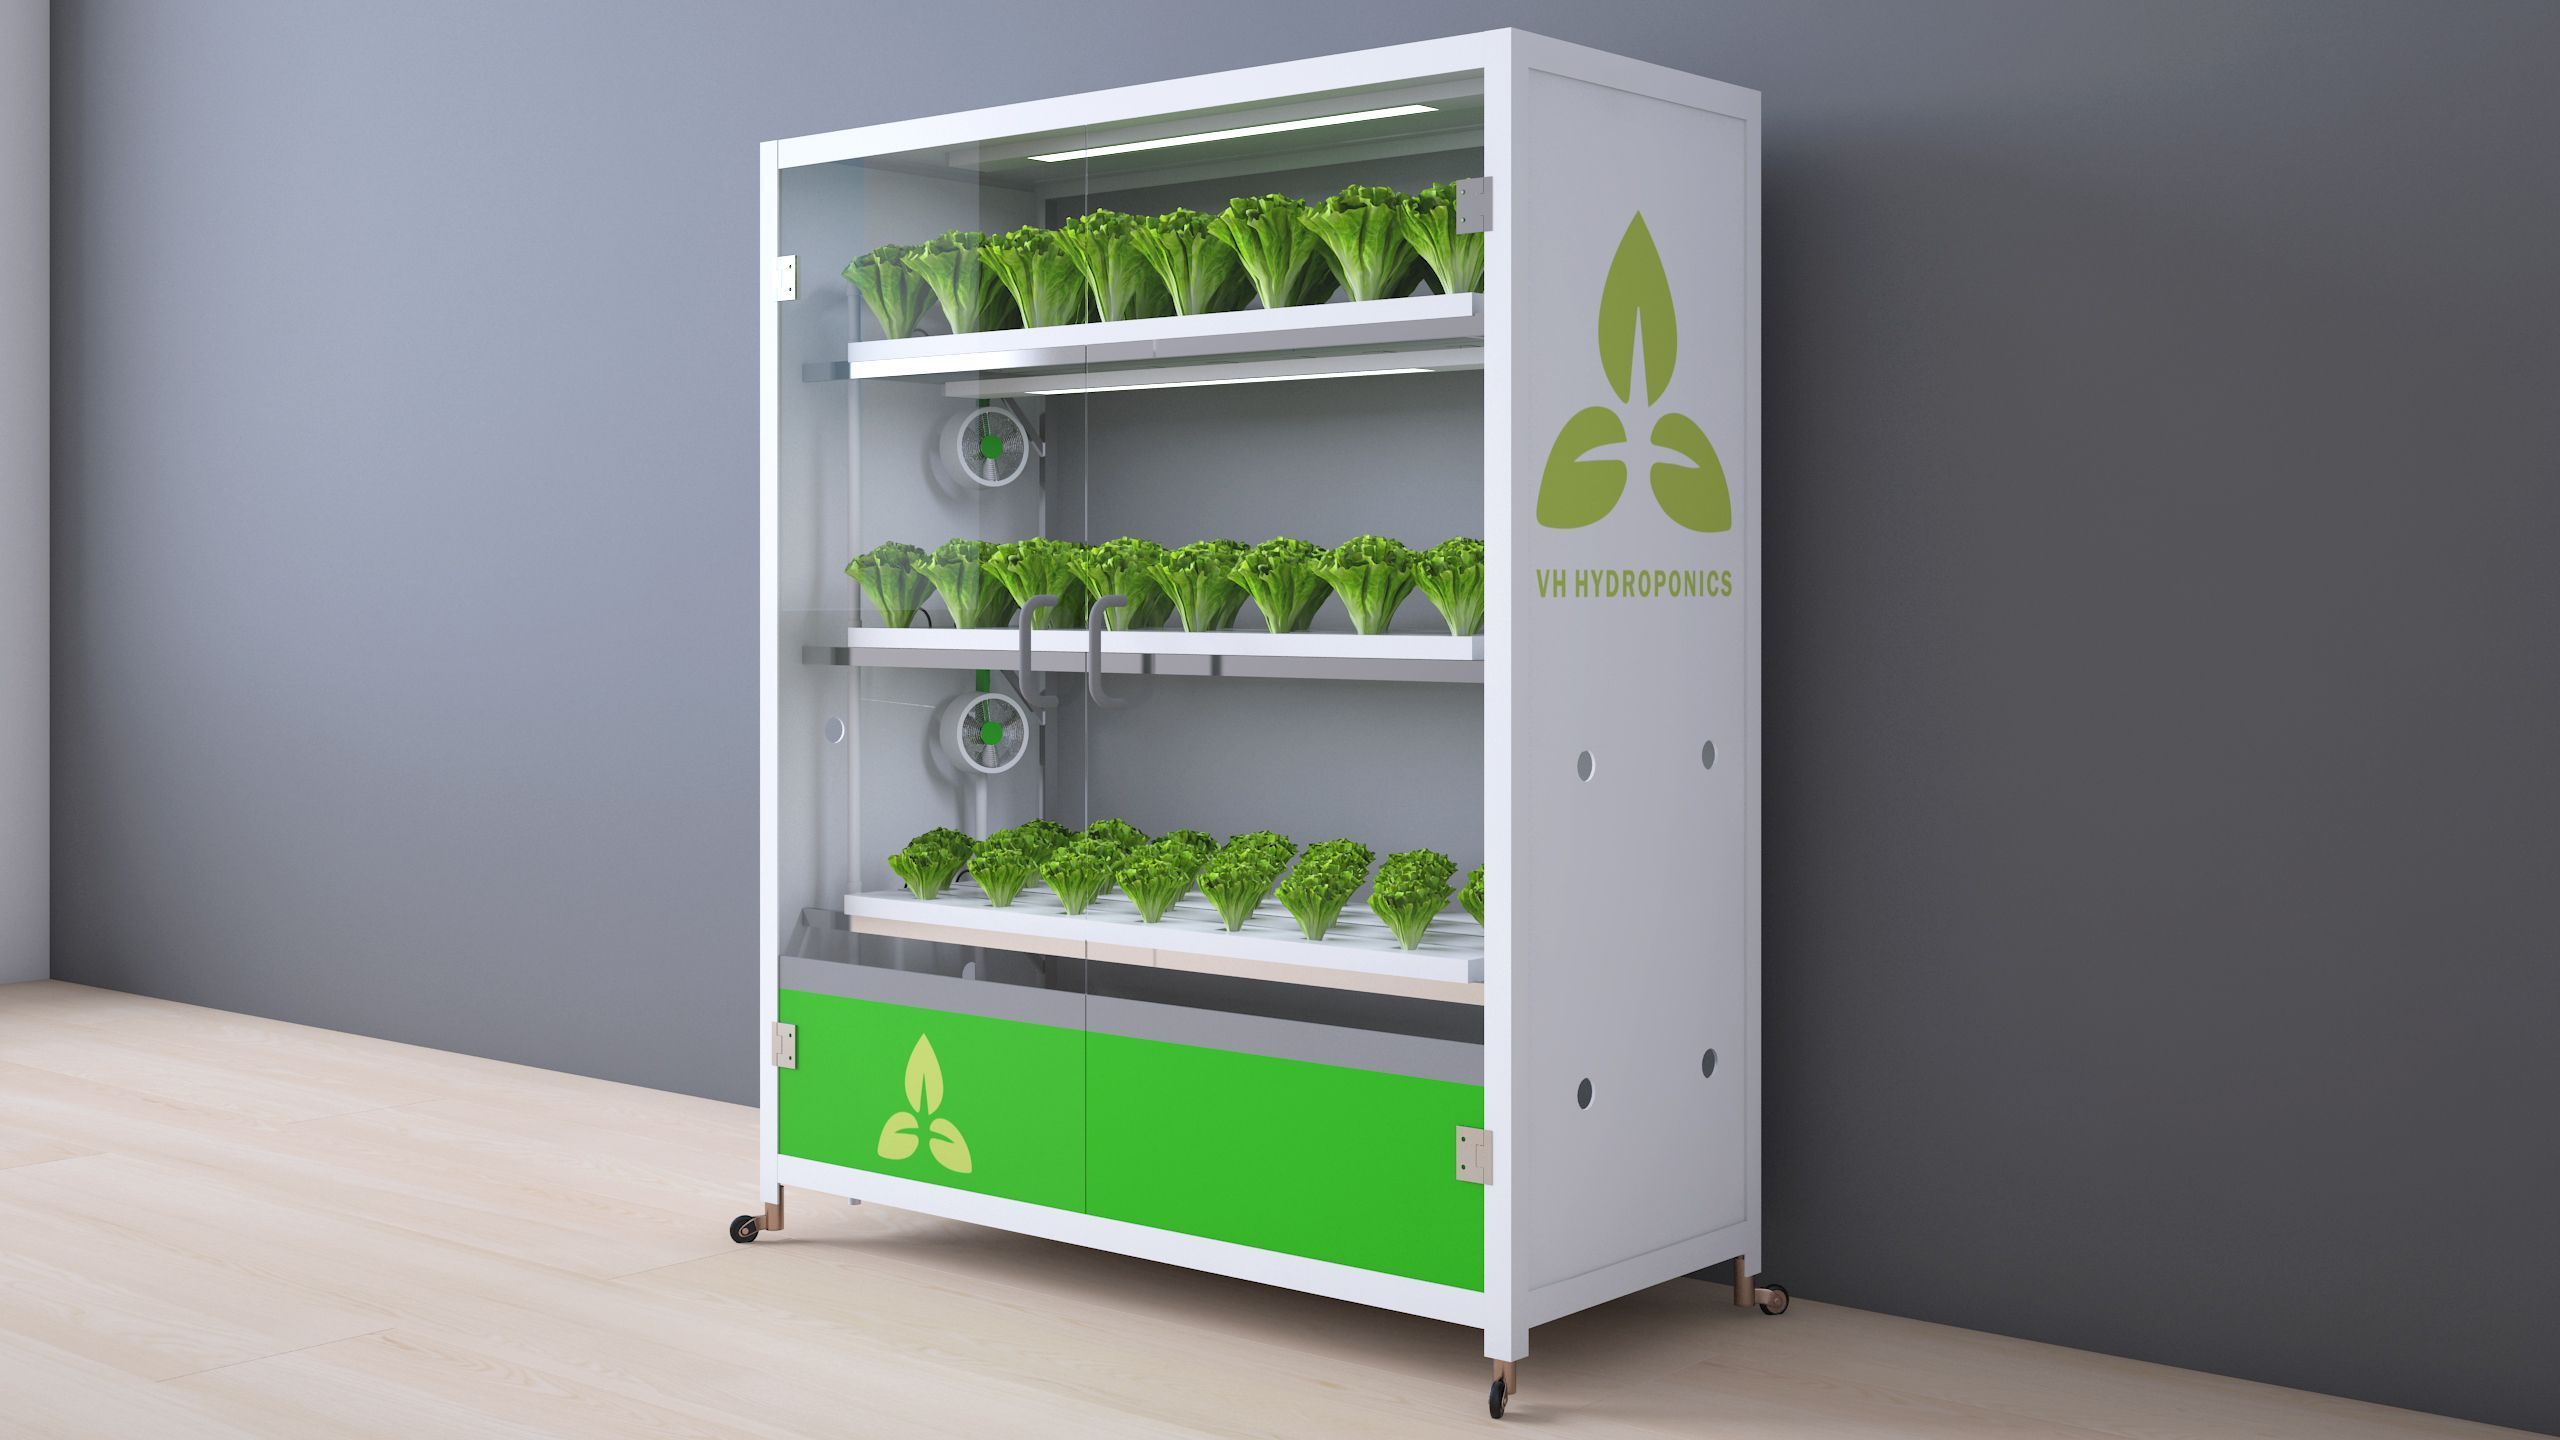 Hydroponic Indoor Gardening Cabinets For Home For Business